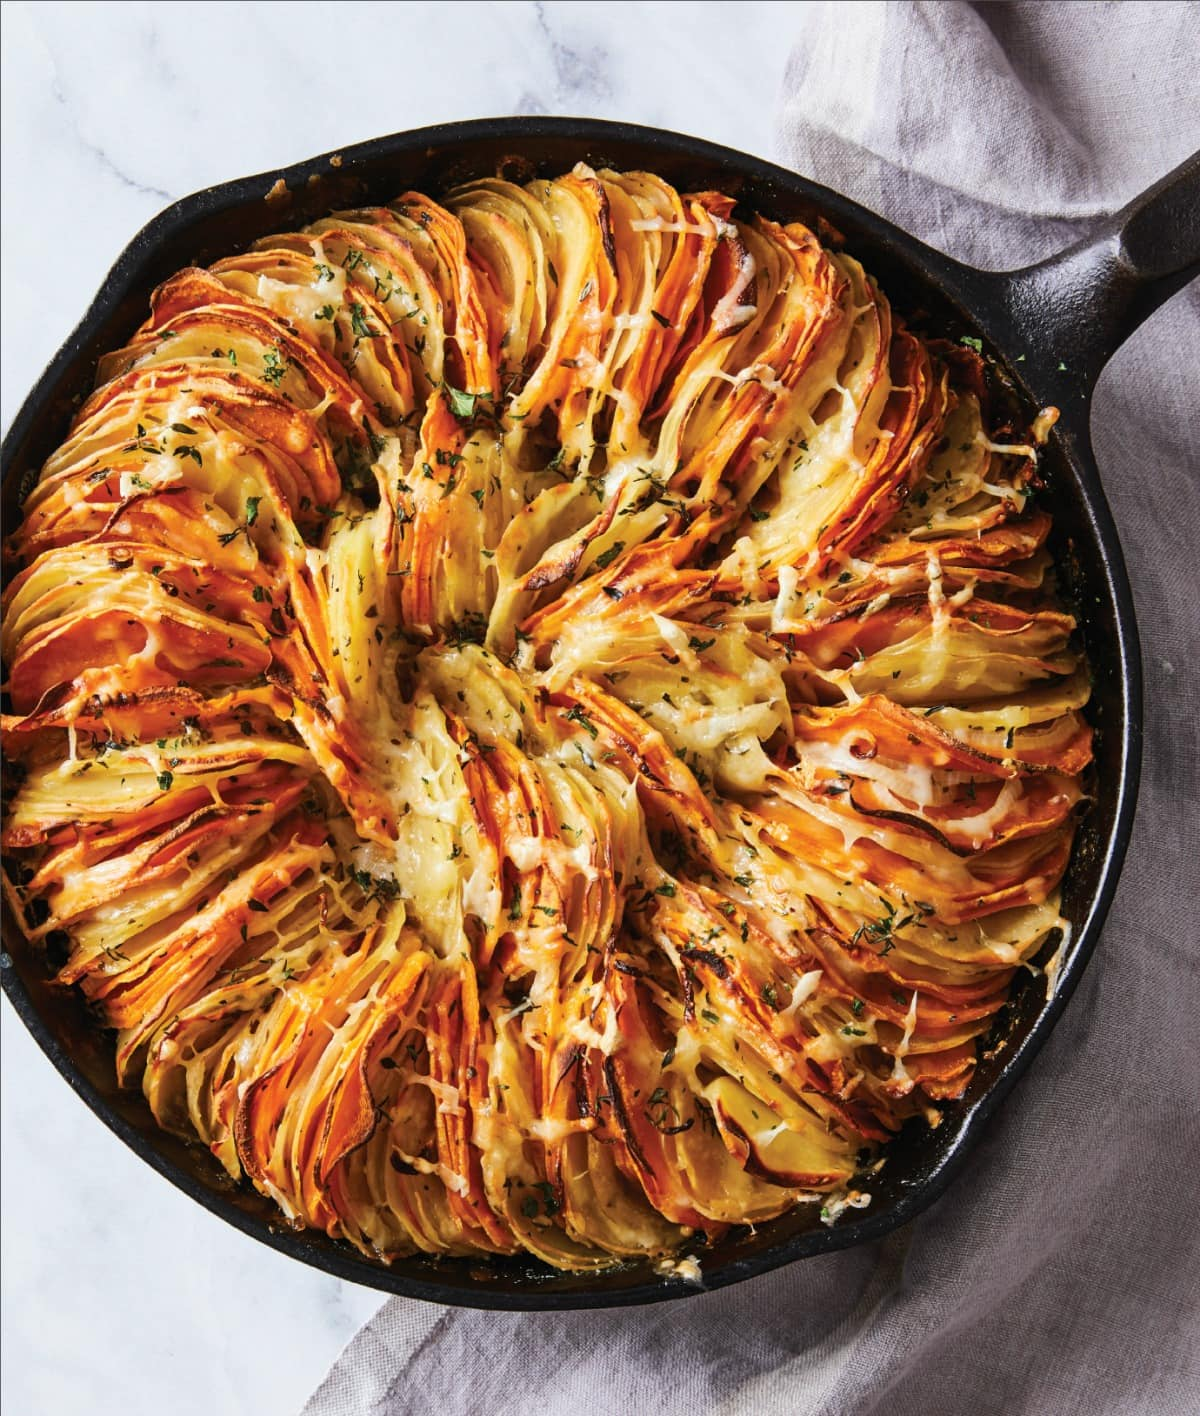 Cheese Herb Potato Gratin is the impressive side dish you'll want for the holidays, but can eat all year long. Impossibly thin leaves of potatoes stack sideways in a skillet with herbs and cheese for a deeply satisfying, comforting dish.